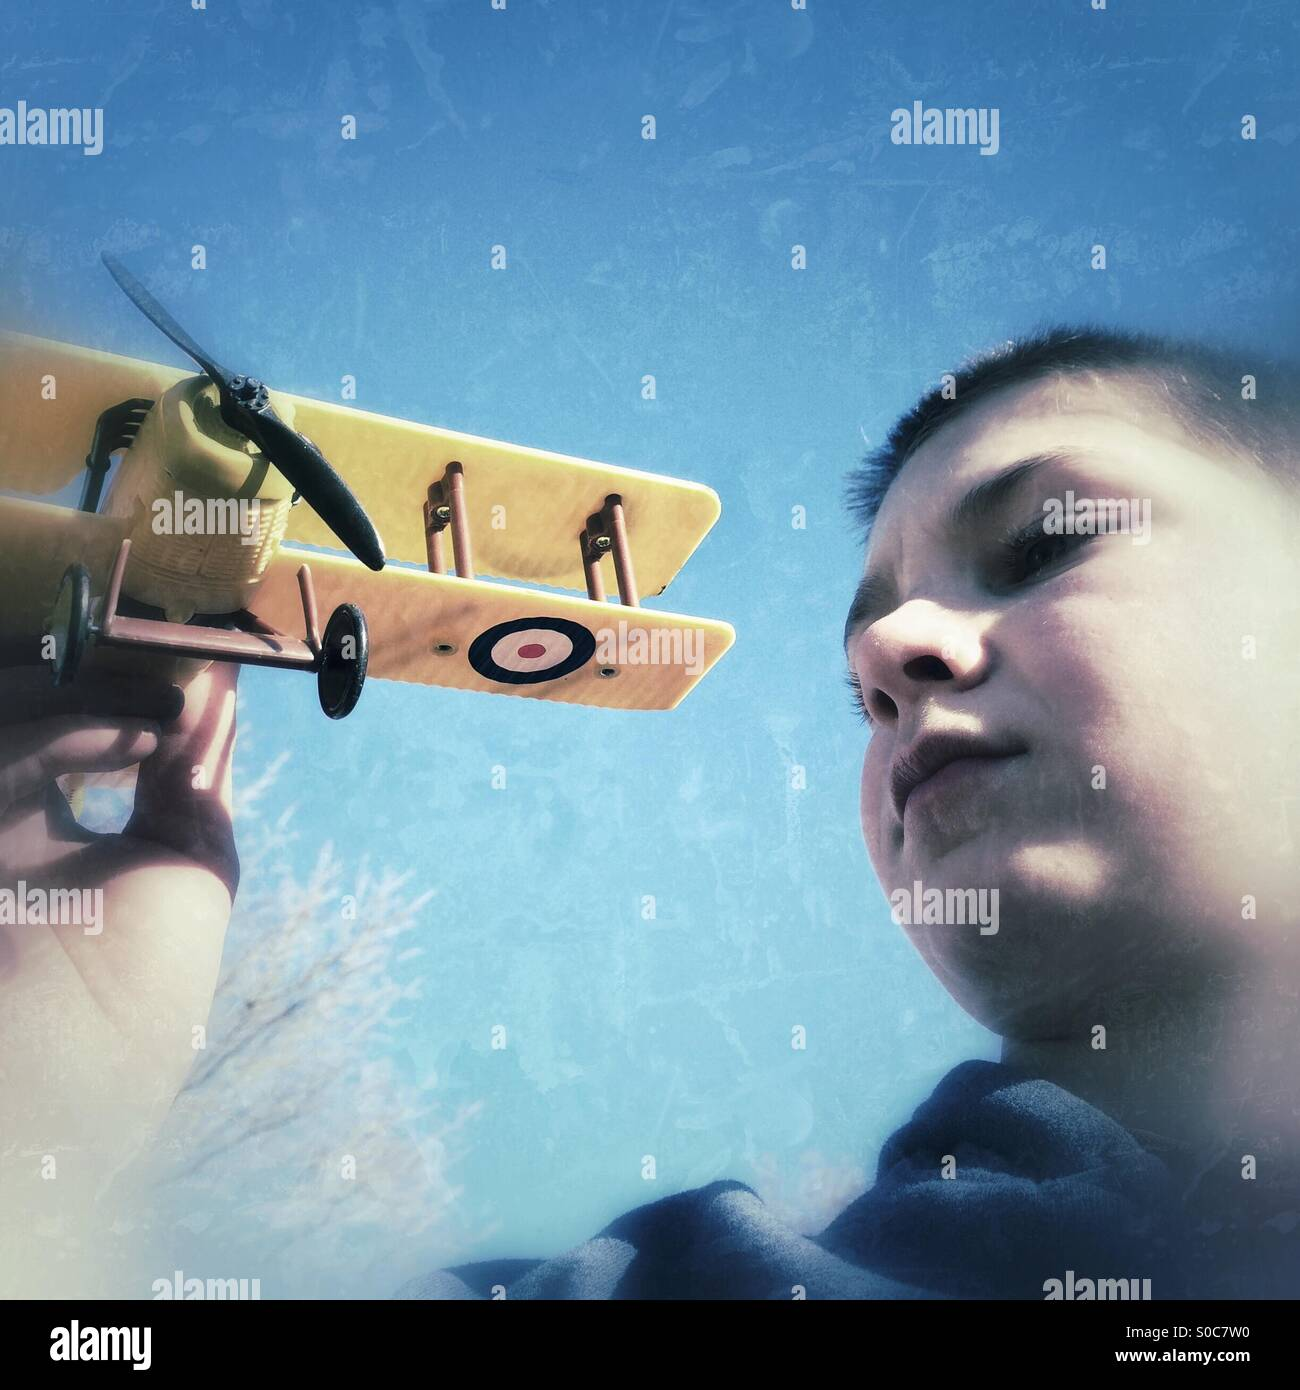 Looking up at a boy holding his model airplane - Stock Image